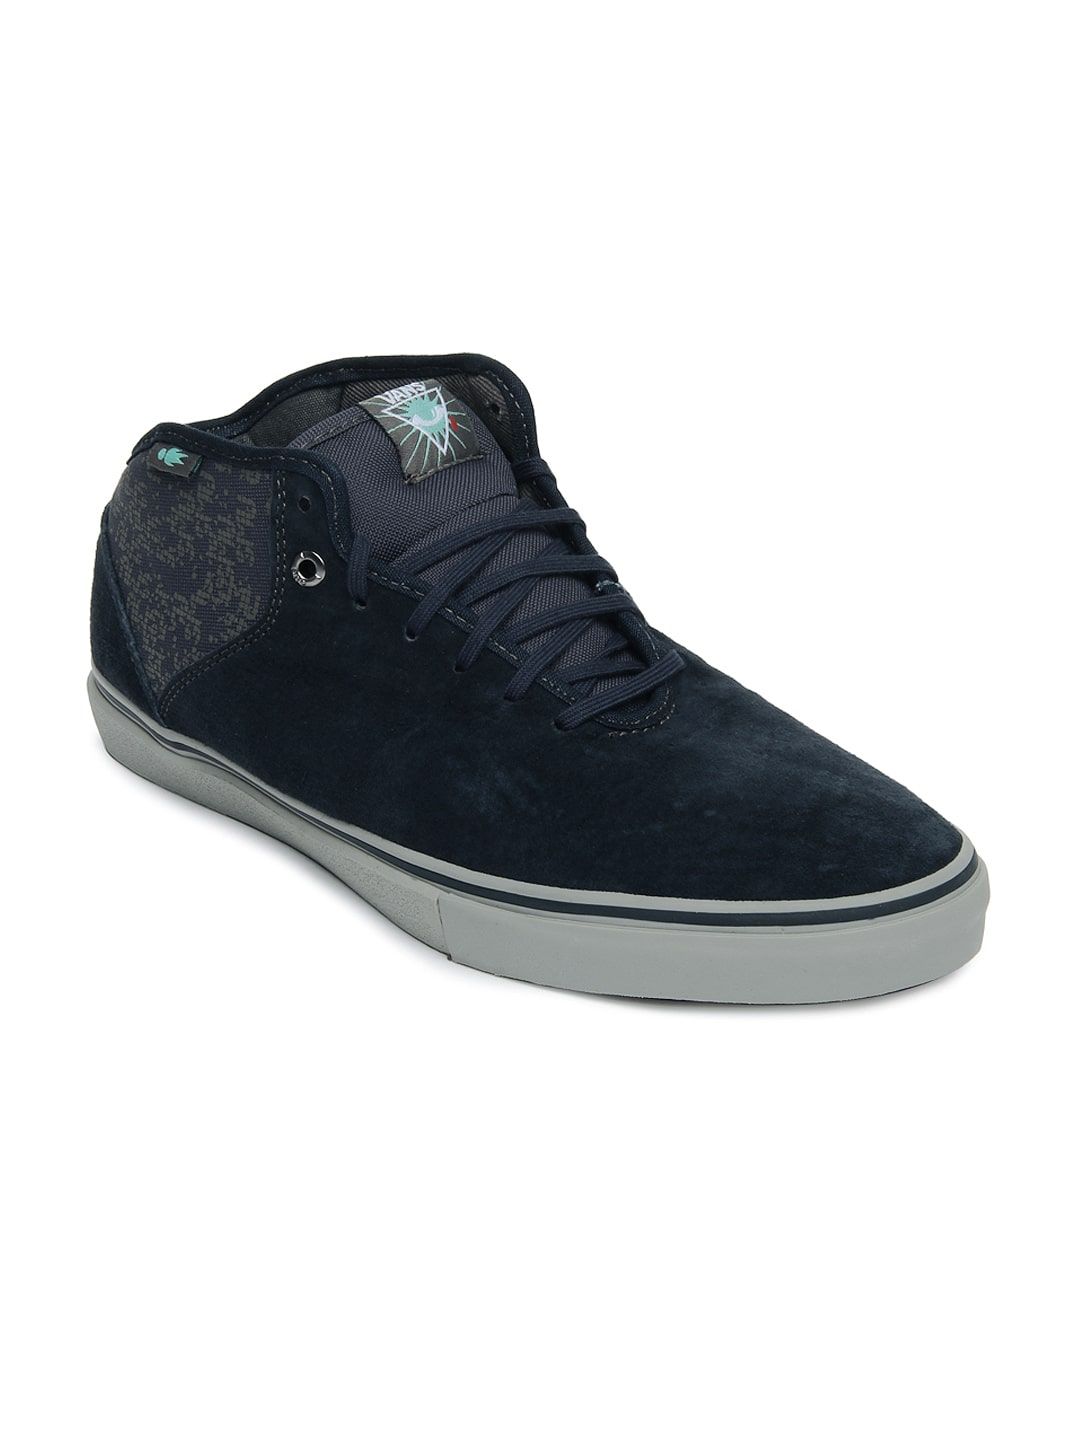 ab85c33cd2 Vans vn-0oye8lb Men Blue Stage 4 Mid Casual Shoes - Best Price in ...